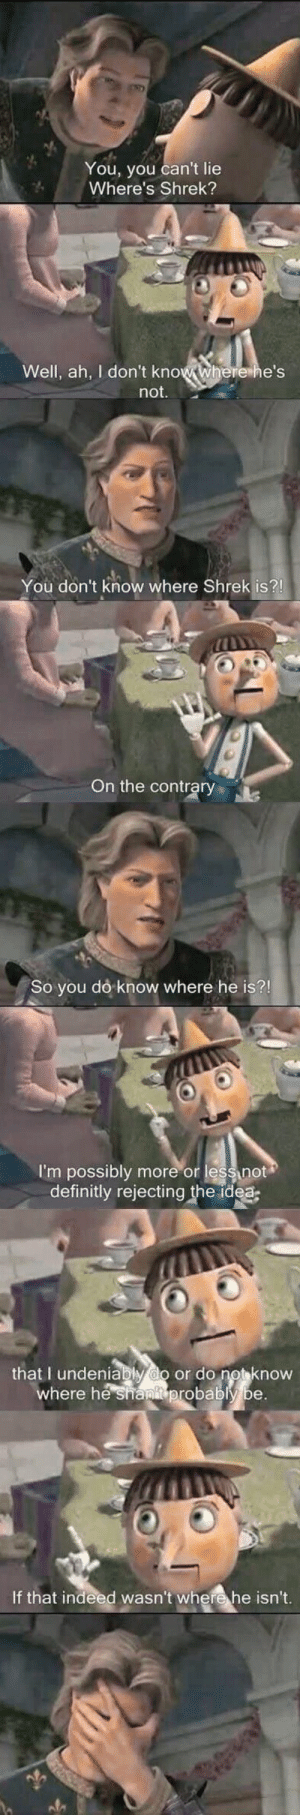 Shrek, Indeed, and Idea: You, you can't lie  Where's Shrek?  Well, ah, I don't know where he's  not.  You don't know where Shrek is?!  On the contrary  So you do know where he is?!  I'm possibly  definitly rejecting the idea  more or lessnot  that I undeniably do or do not know  where he shanit probably be.  If that indeed wasn't where he isn't.